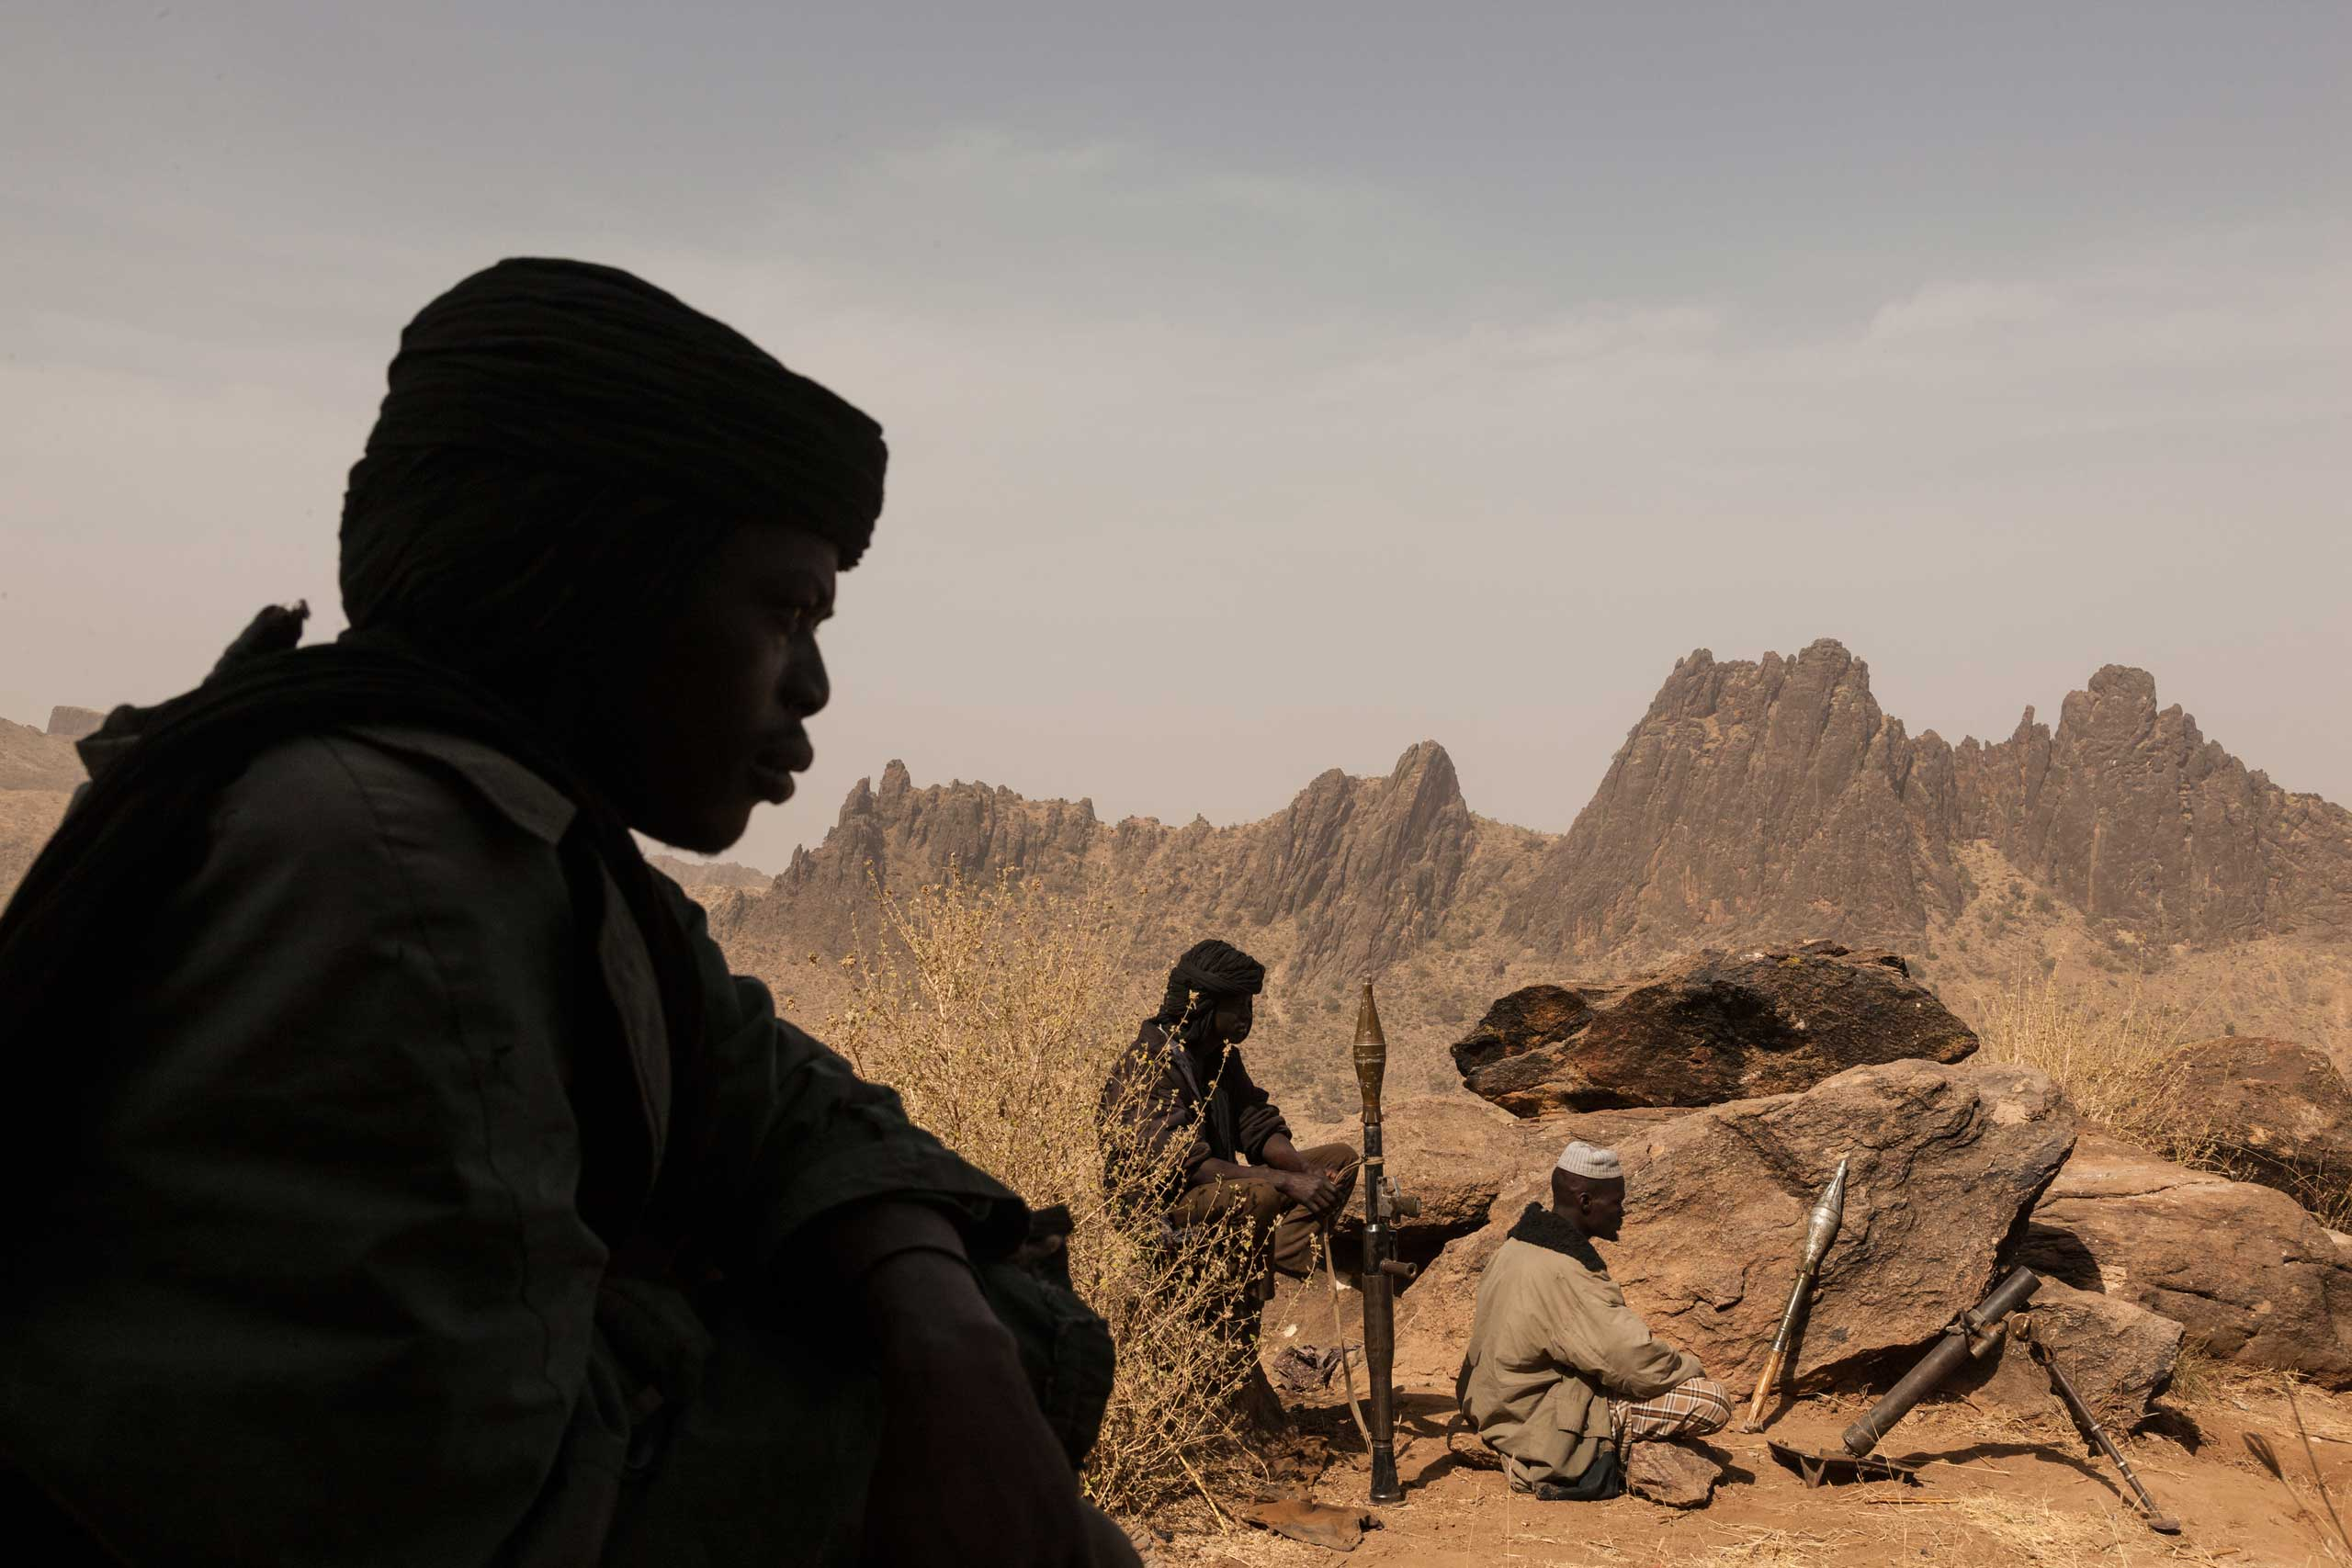 Rebels of the Sudan Liberation Army, led by Abdul Wahid (SLA-AW), defended the top of a mountain from government forces in Central Darfur, Sudan, on March 4, 2015.